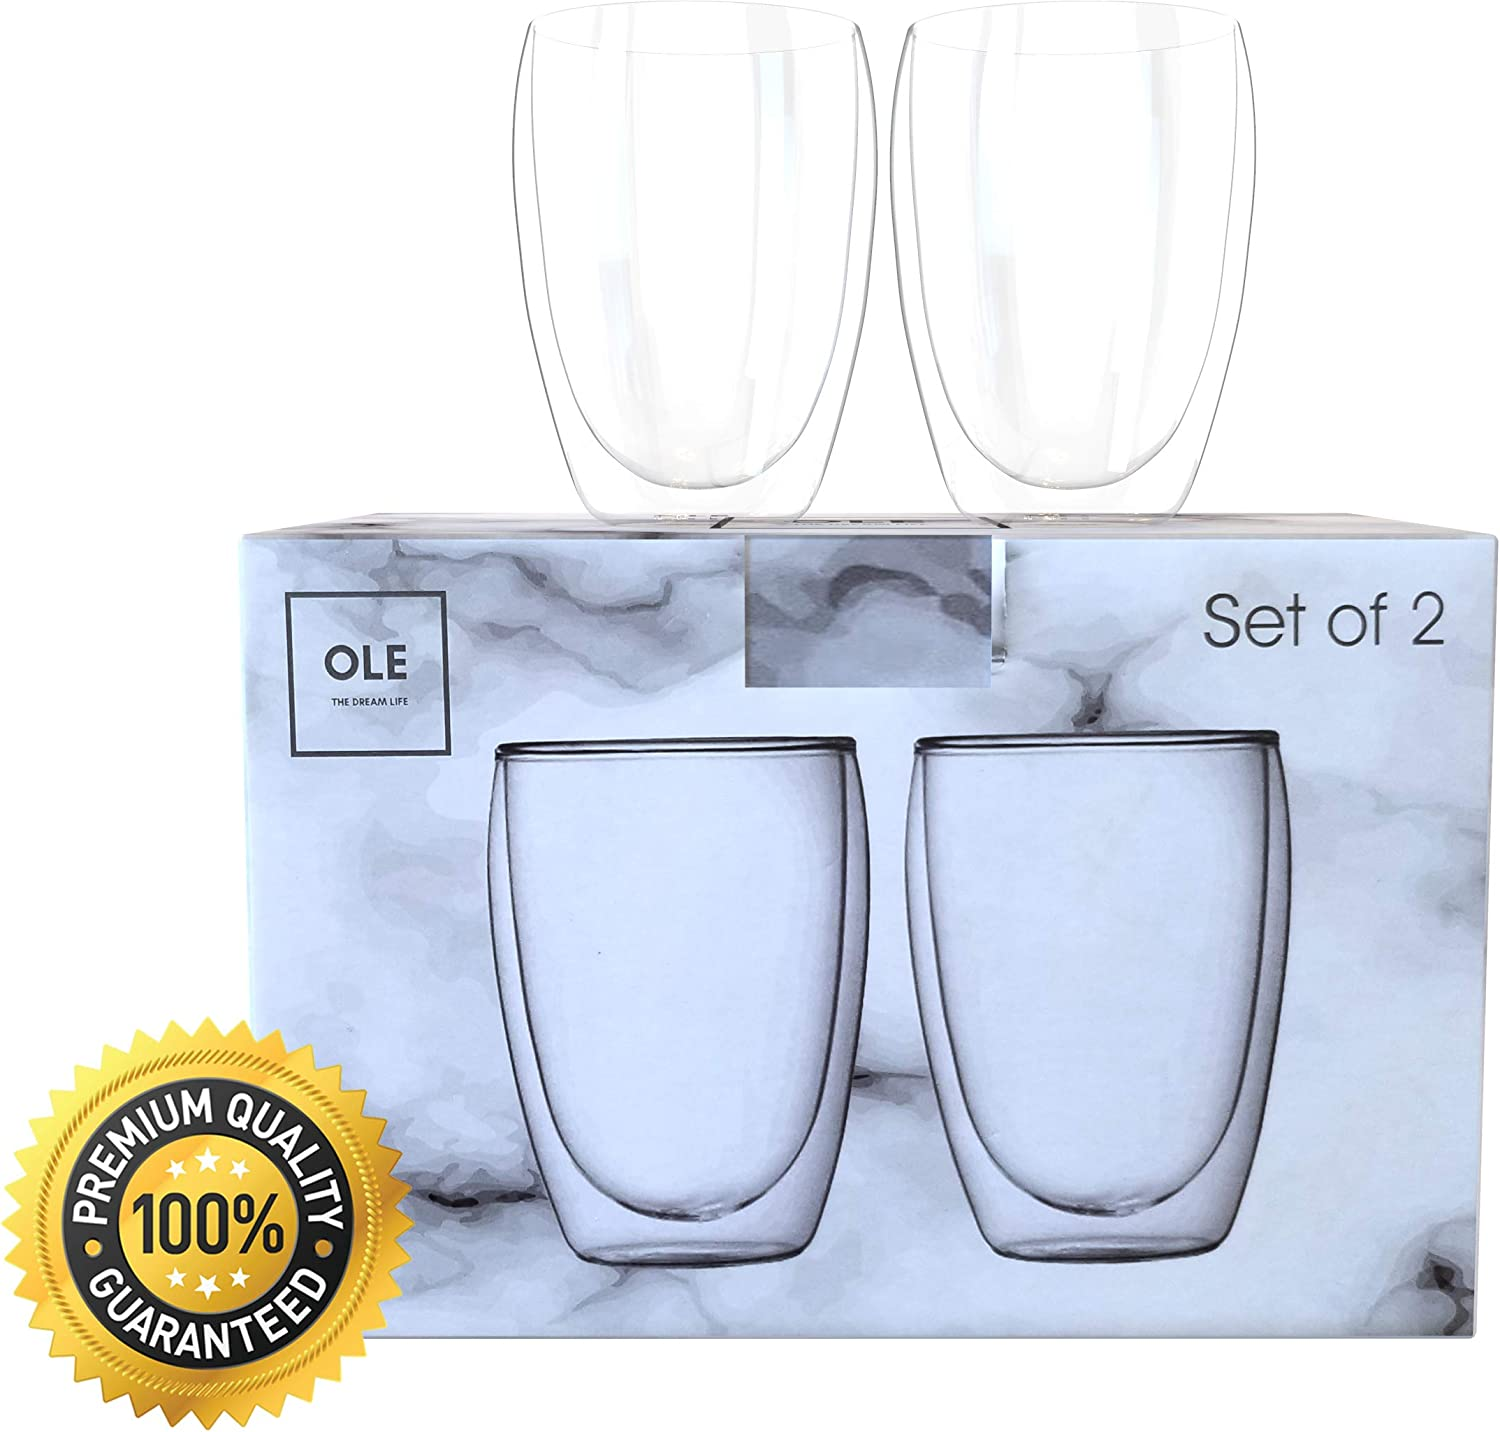 OLE Insulated Glass Coffee Mugs – Set of 2 Double Wall Glass Mugs – 350ml/12oz – Clear Thermal Cups for Espresso, Tea, Beers, Smoothies, Cappuccino – BPA Free, Dishwasher, Freezer & Microwave Safe